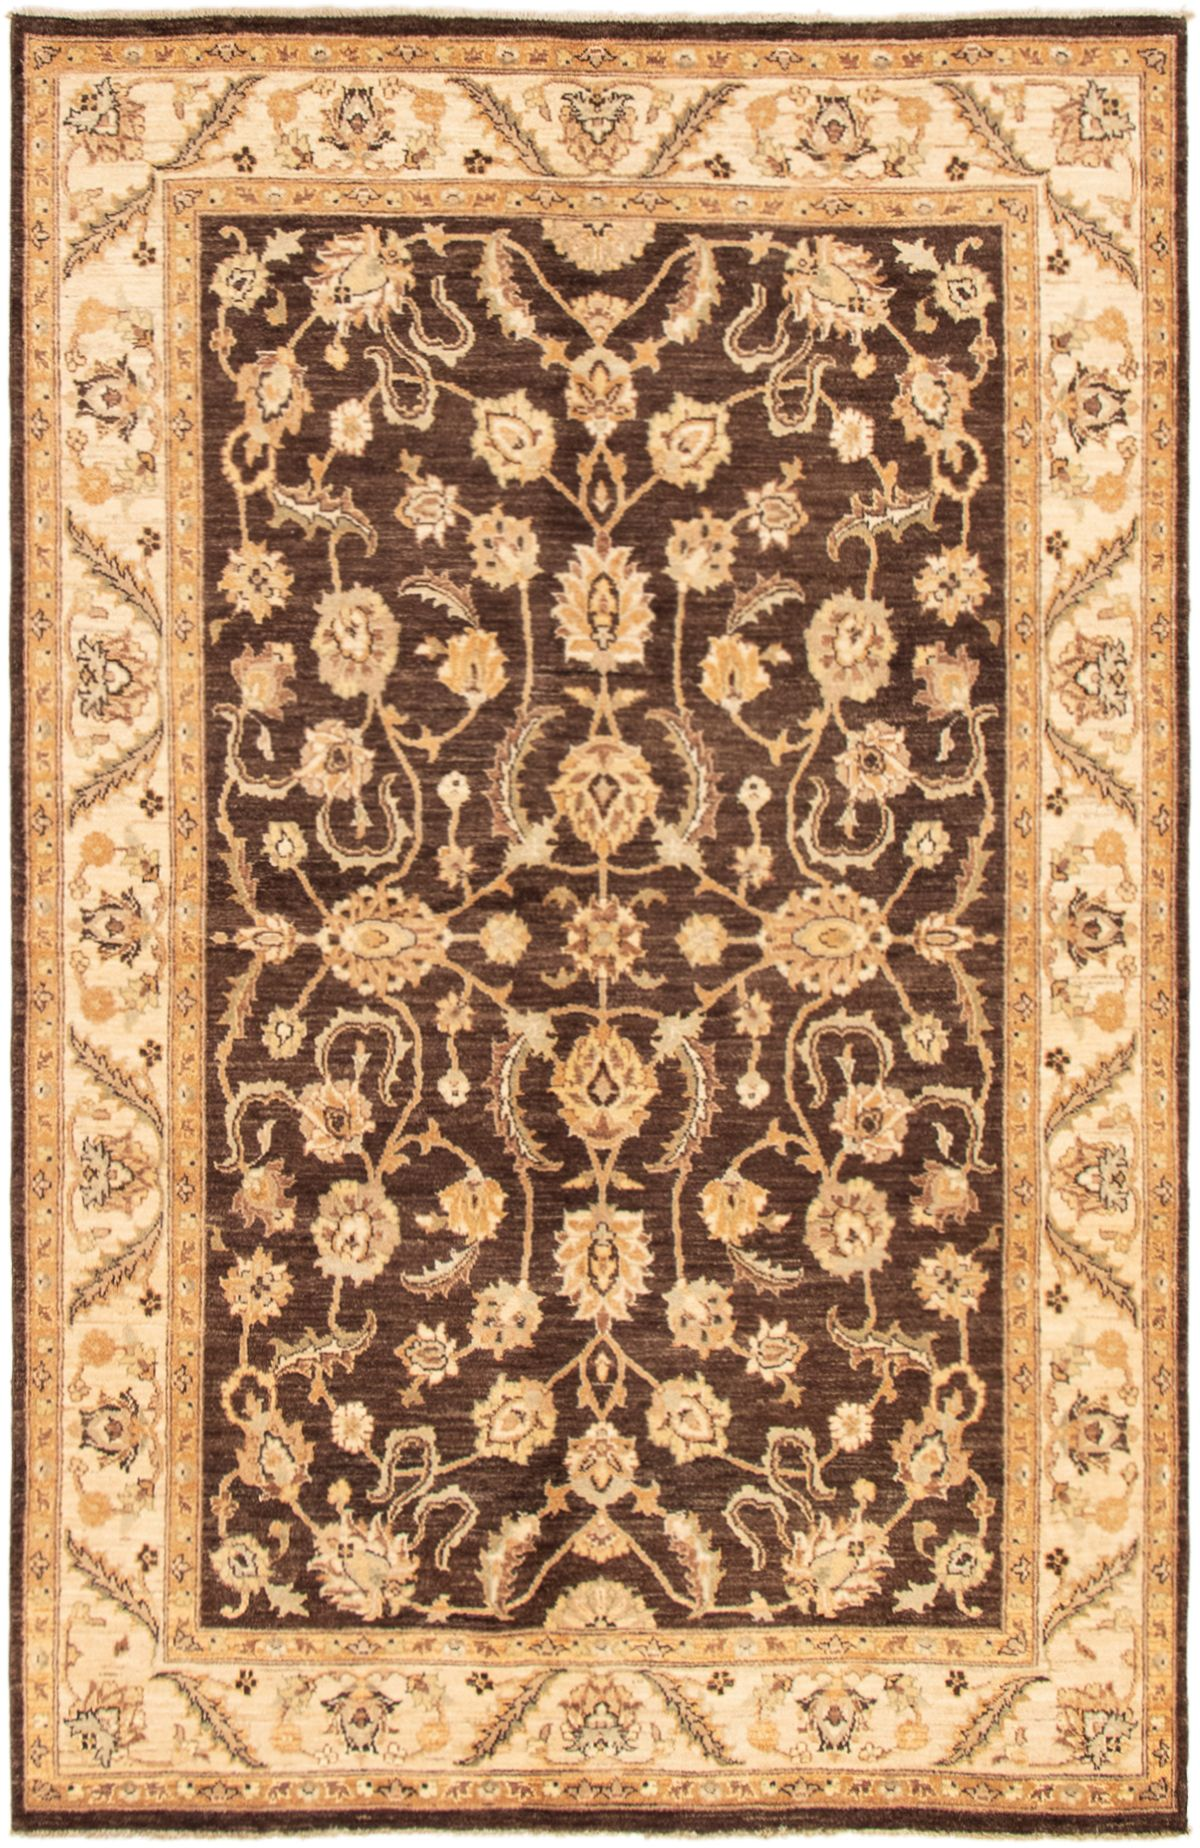 "Hand-knotted Chobi Finest Dark Brown Wool Rug 6'1"" x 9'4"" Product Image"